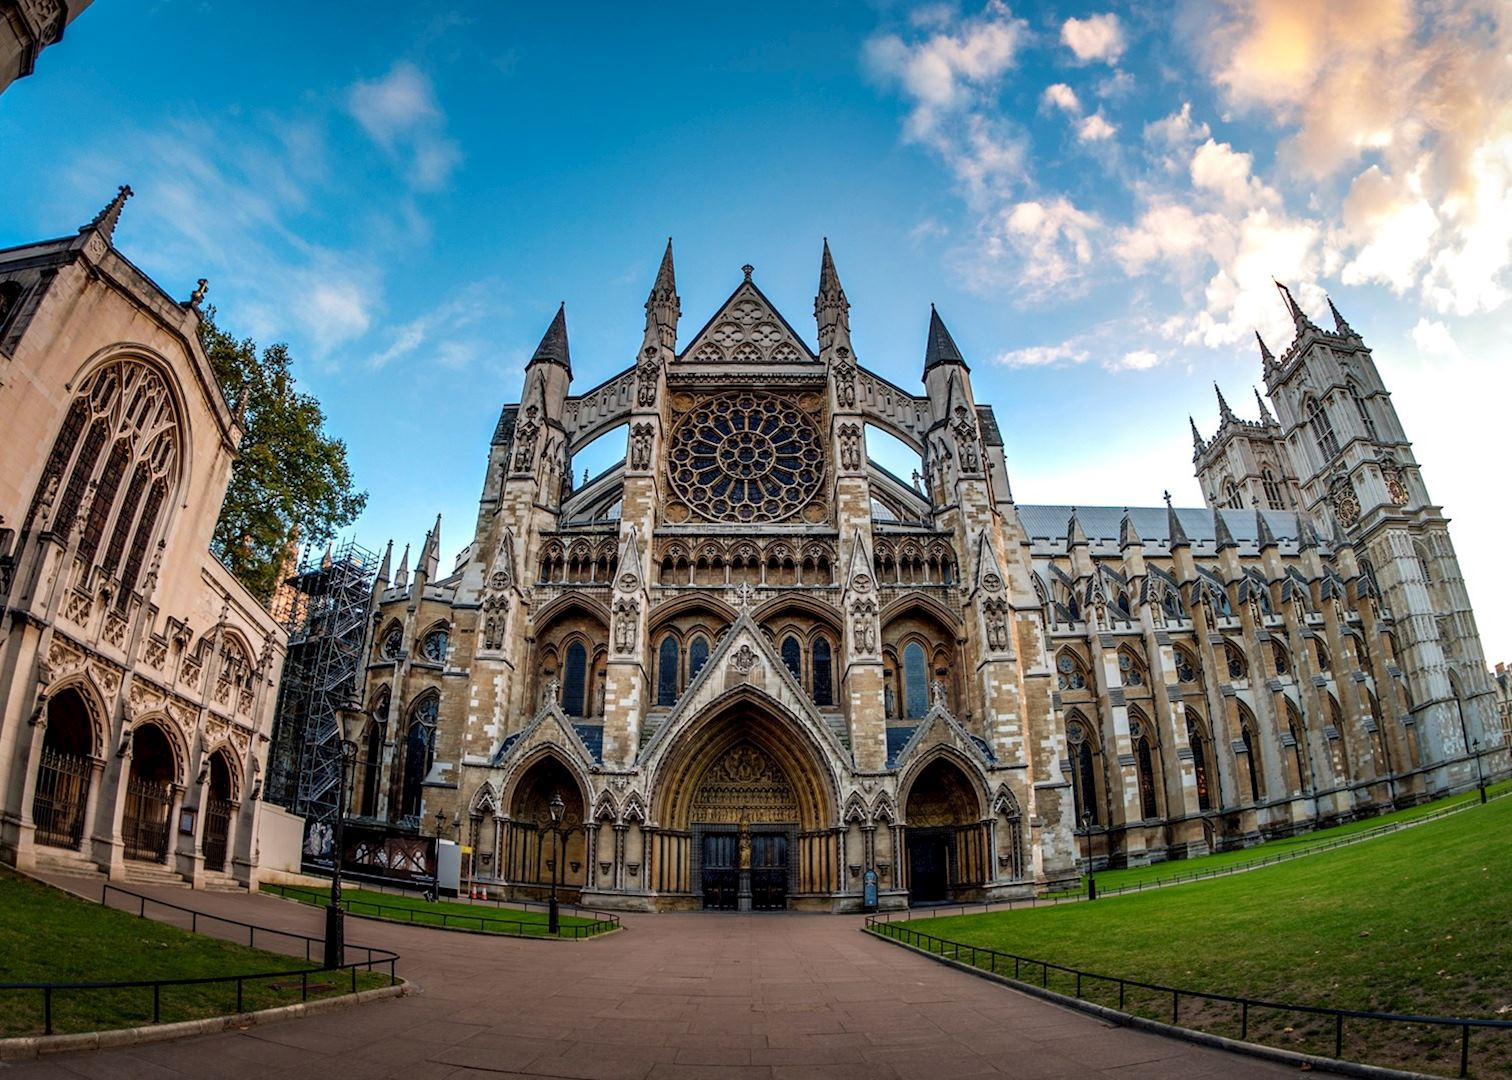 westminster abbey days out guide